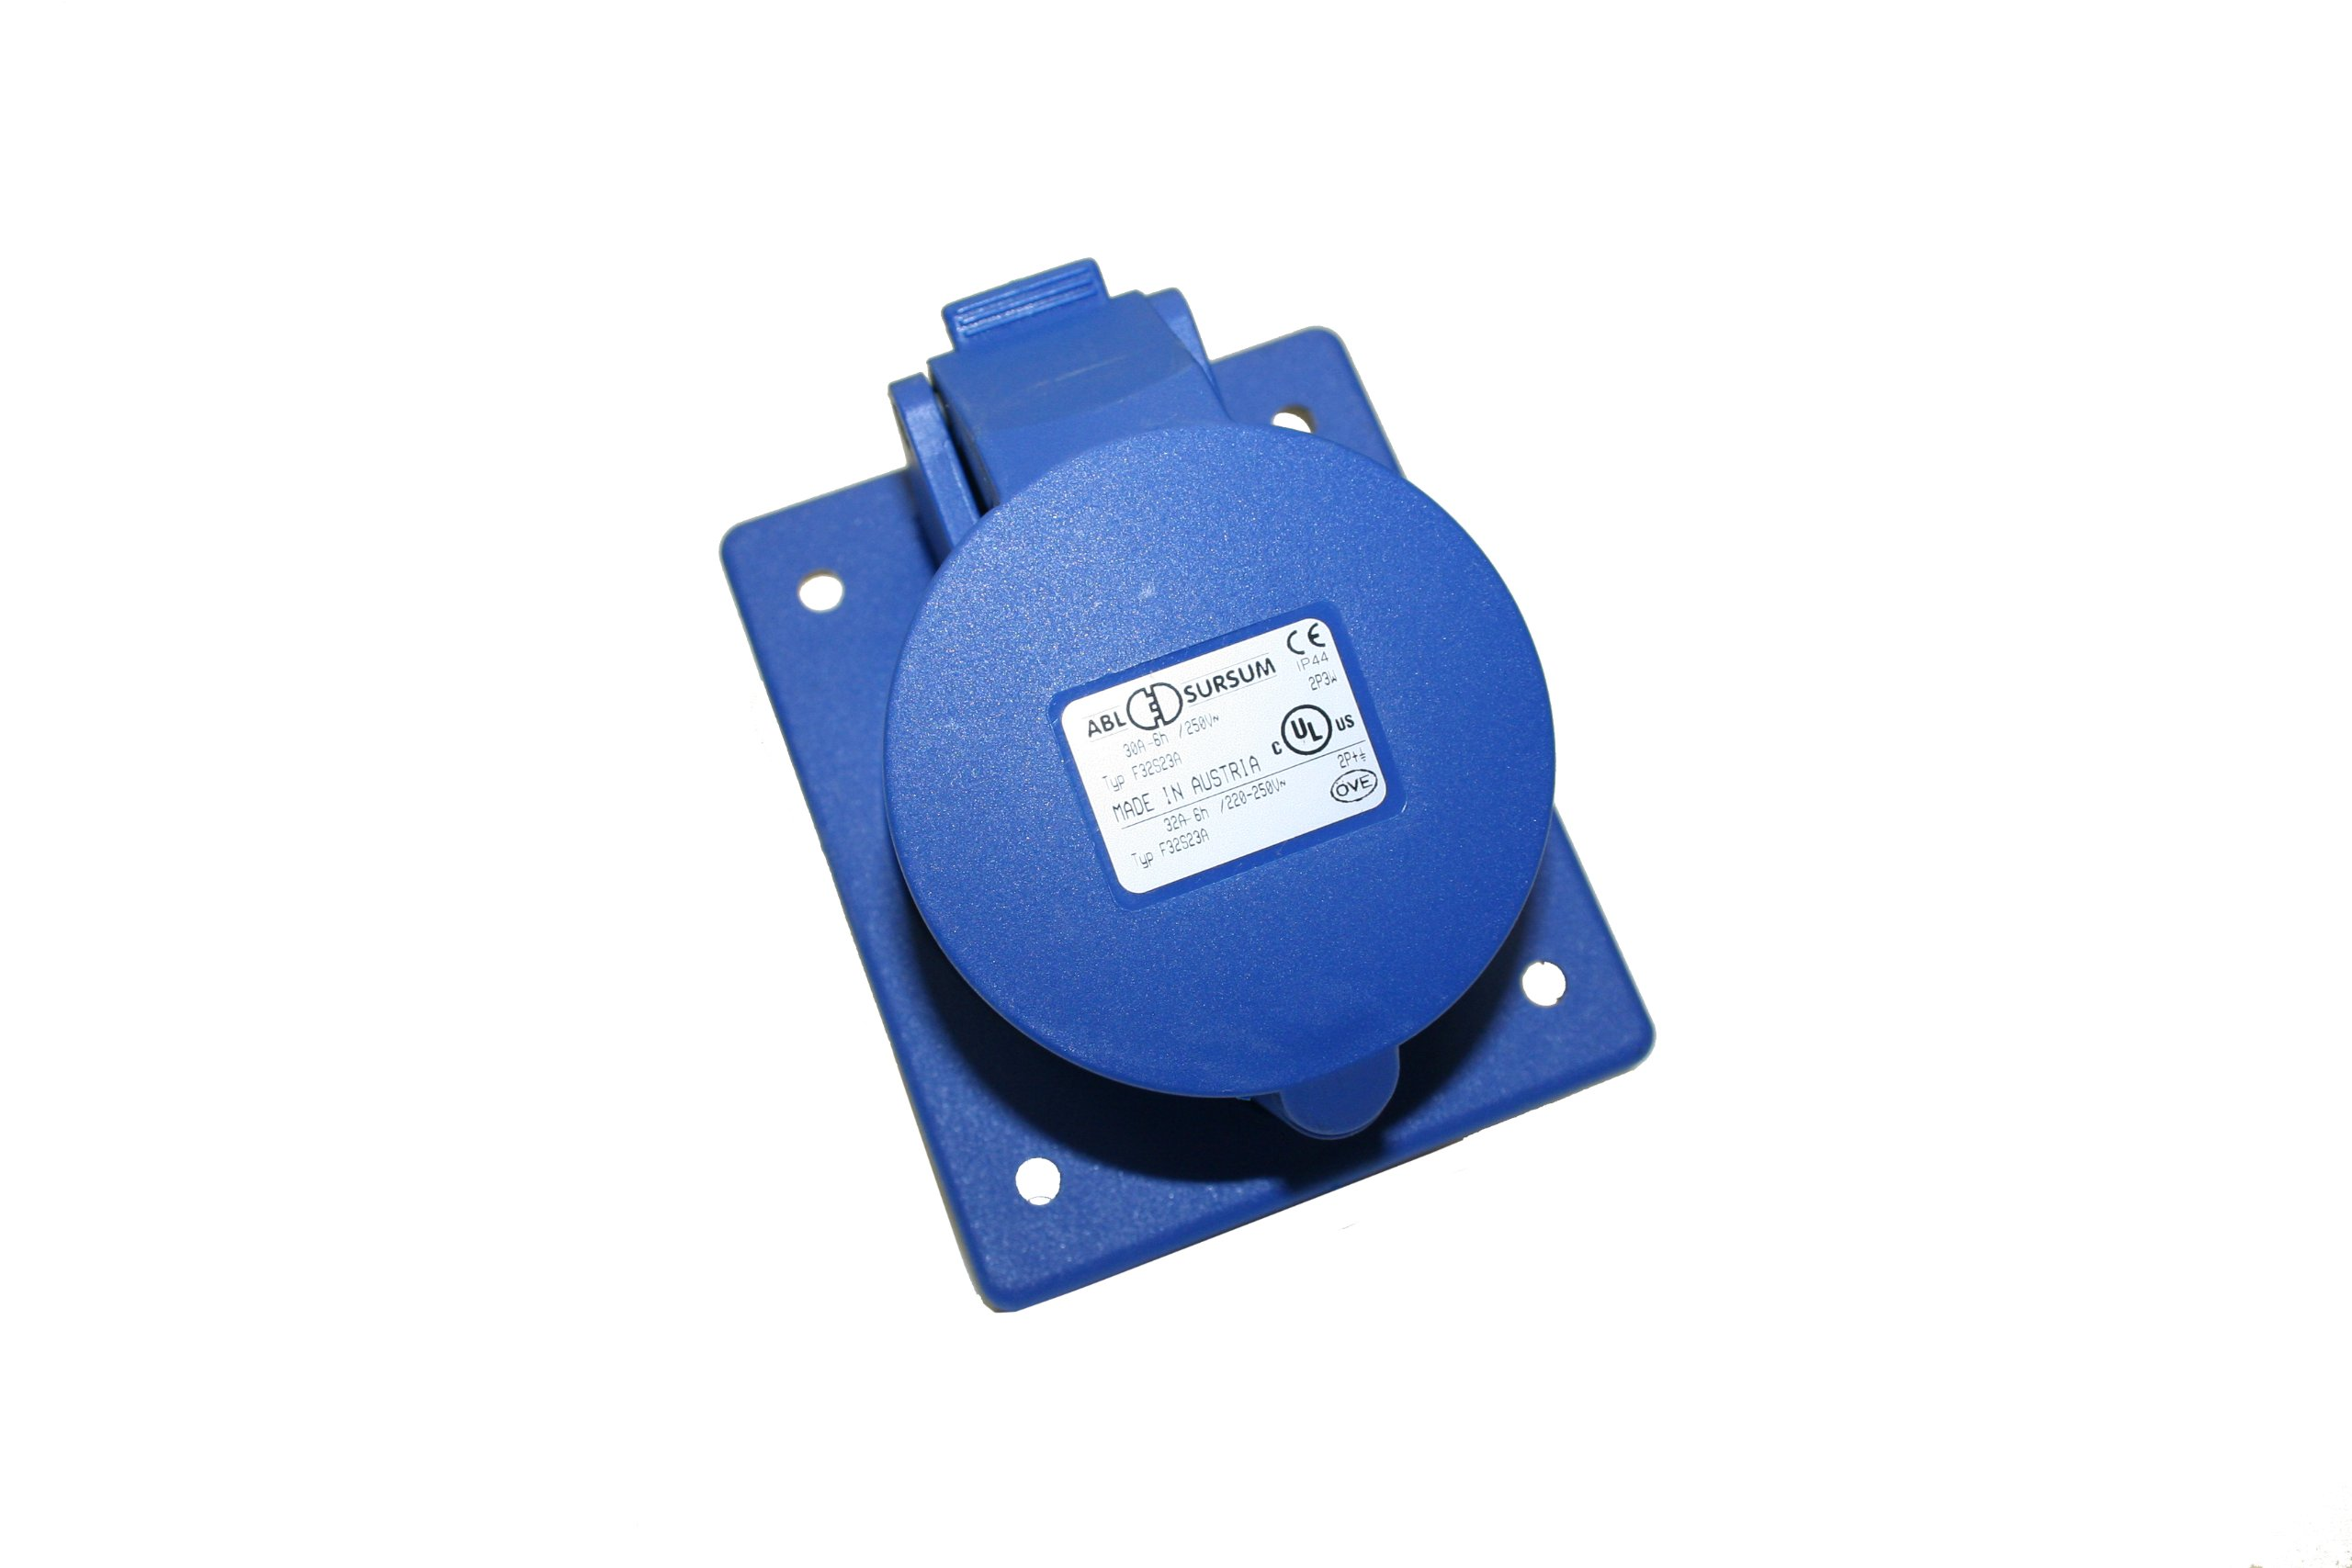 Interpower 84232233 IEC 60309 High Power Recepticale, Two Pole, Three Wire, 30A Rating, 250VAC Voltage, Blue 6 Hour Designation